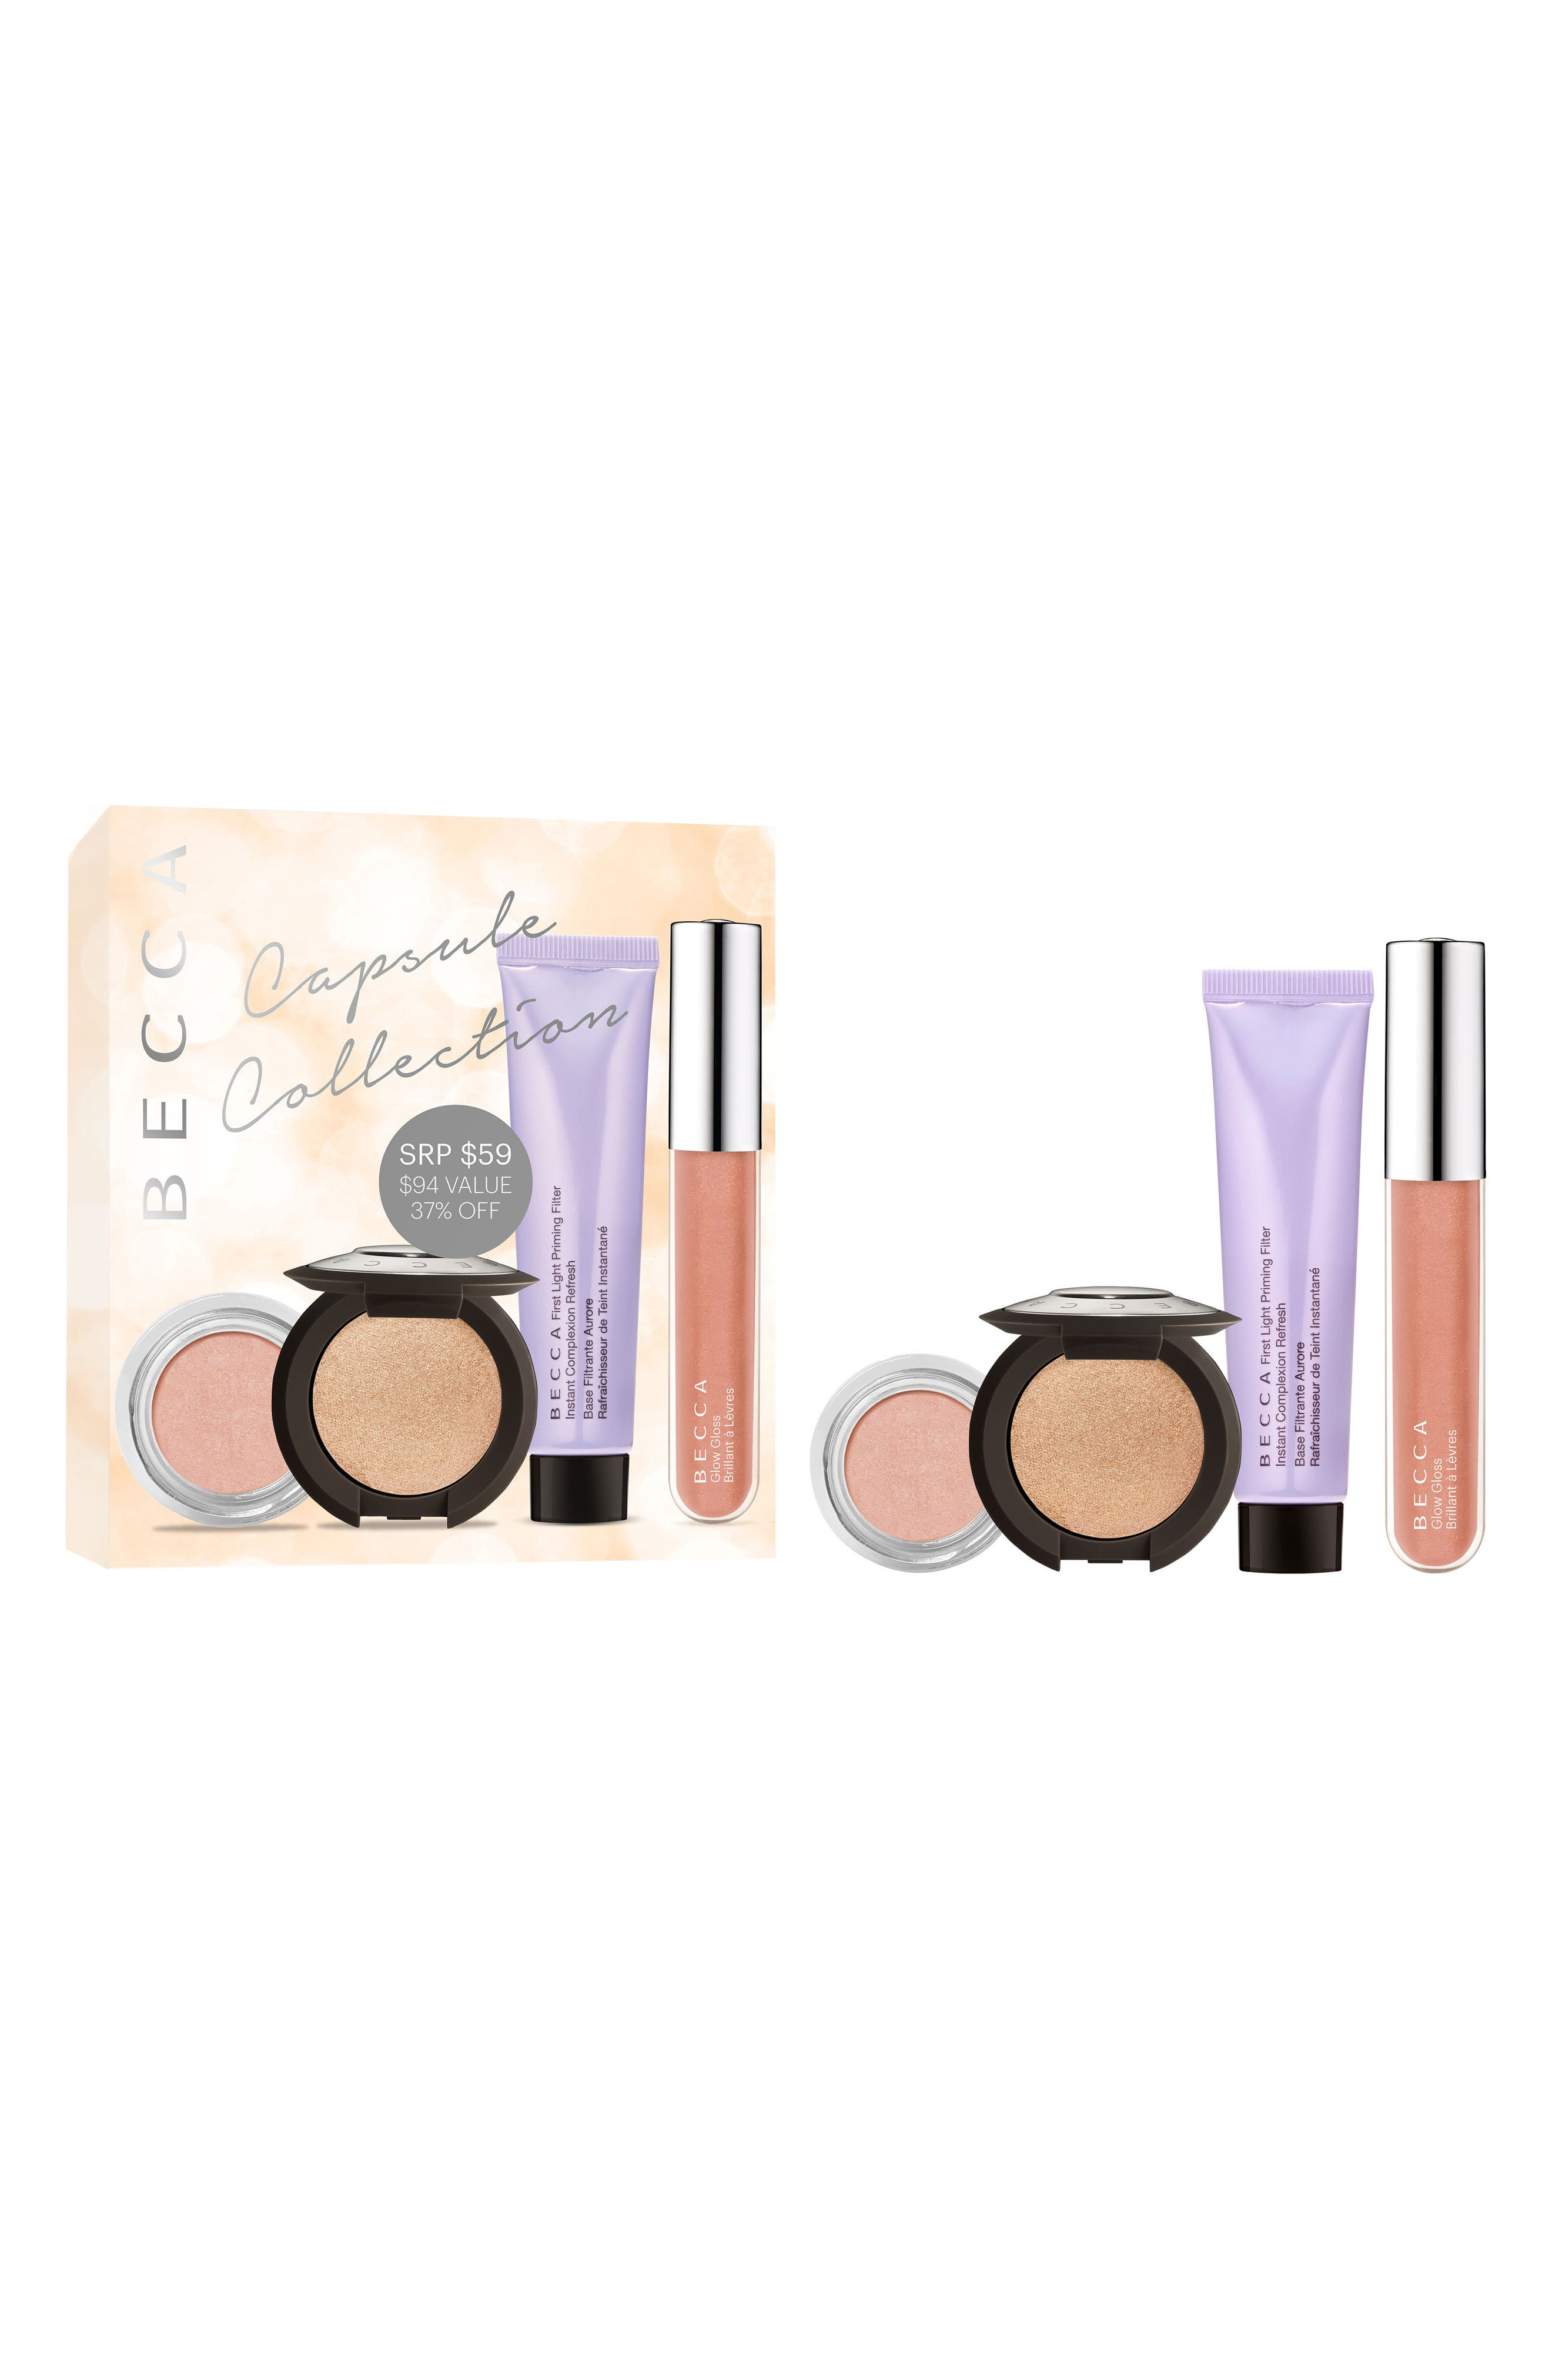 BECCA COSMETICS, BECCA Capsule Collection, Alternate thumbnail 5, color, 000